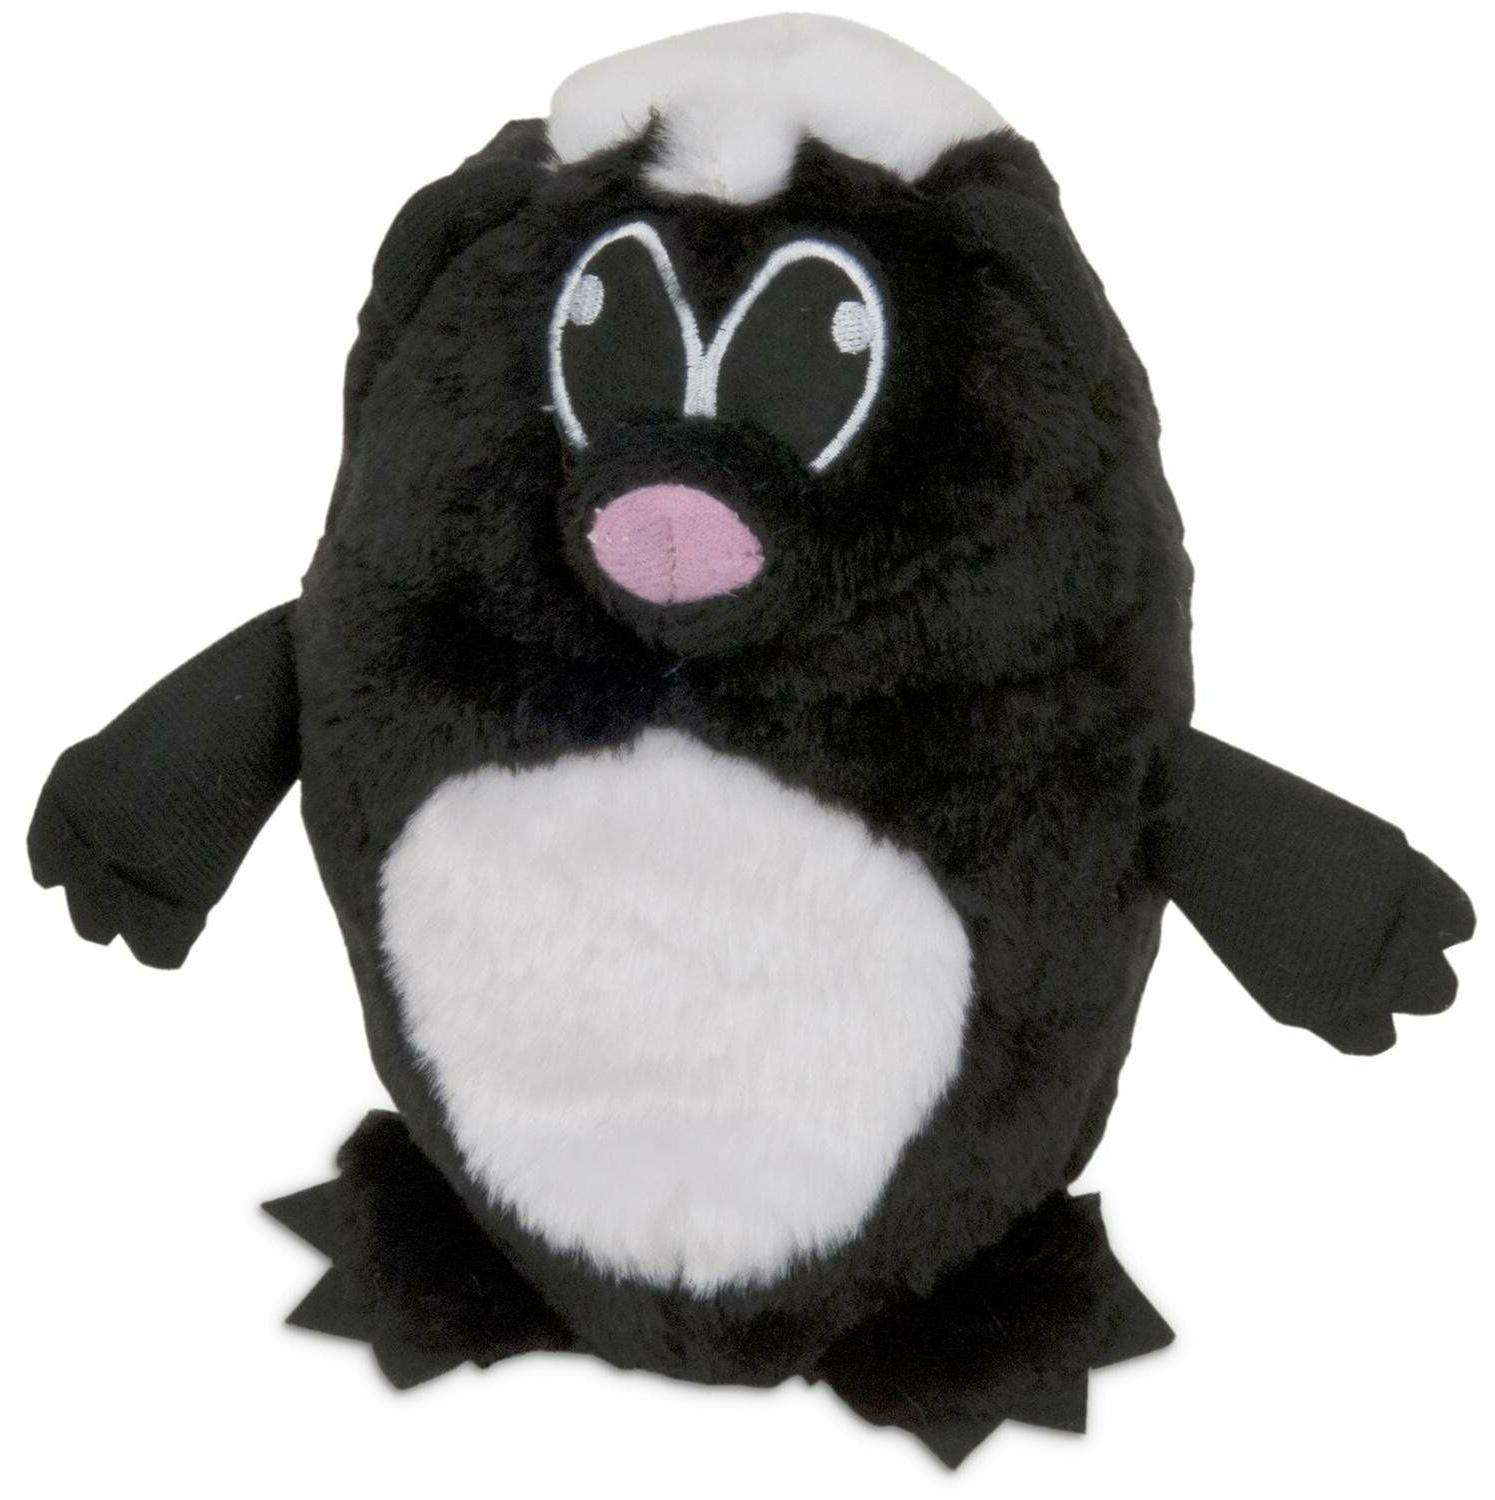 53640 skunk grunts dog toy